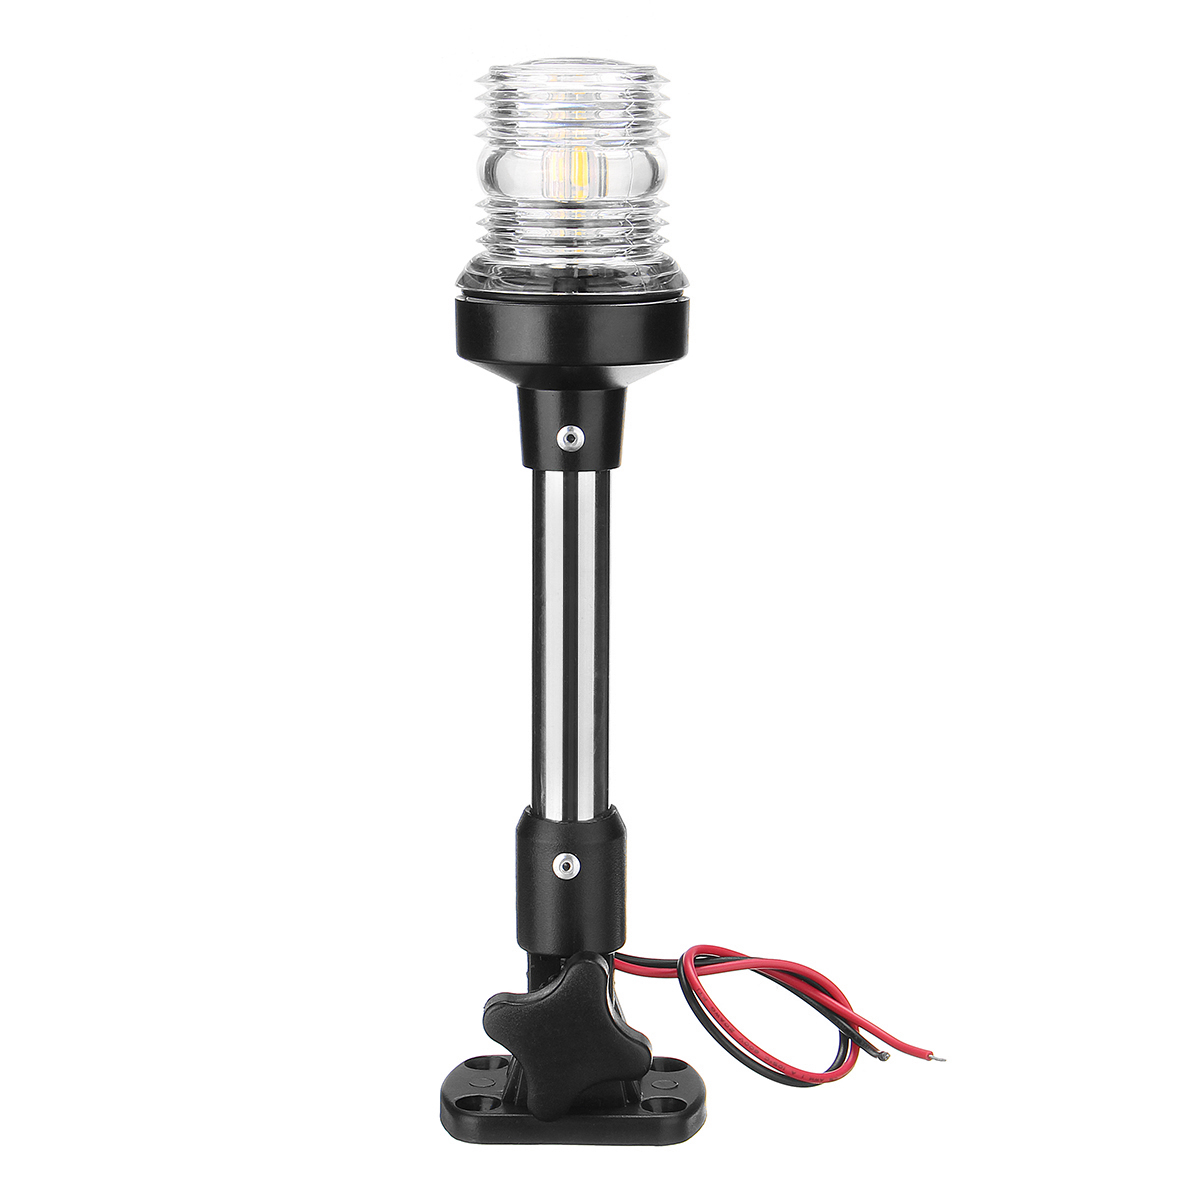 12V-24V Fold Down LED Navigation Lights 360 Degree Marine Boat Pontoon Stern Anchor Pole Lamp